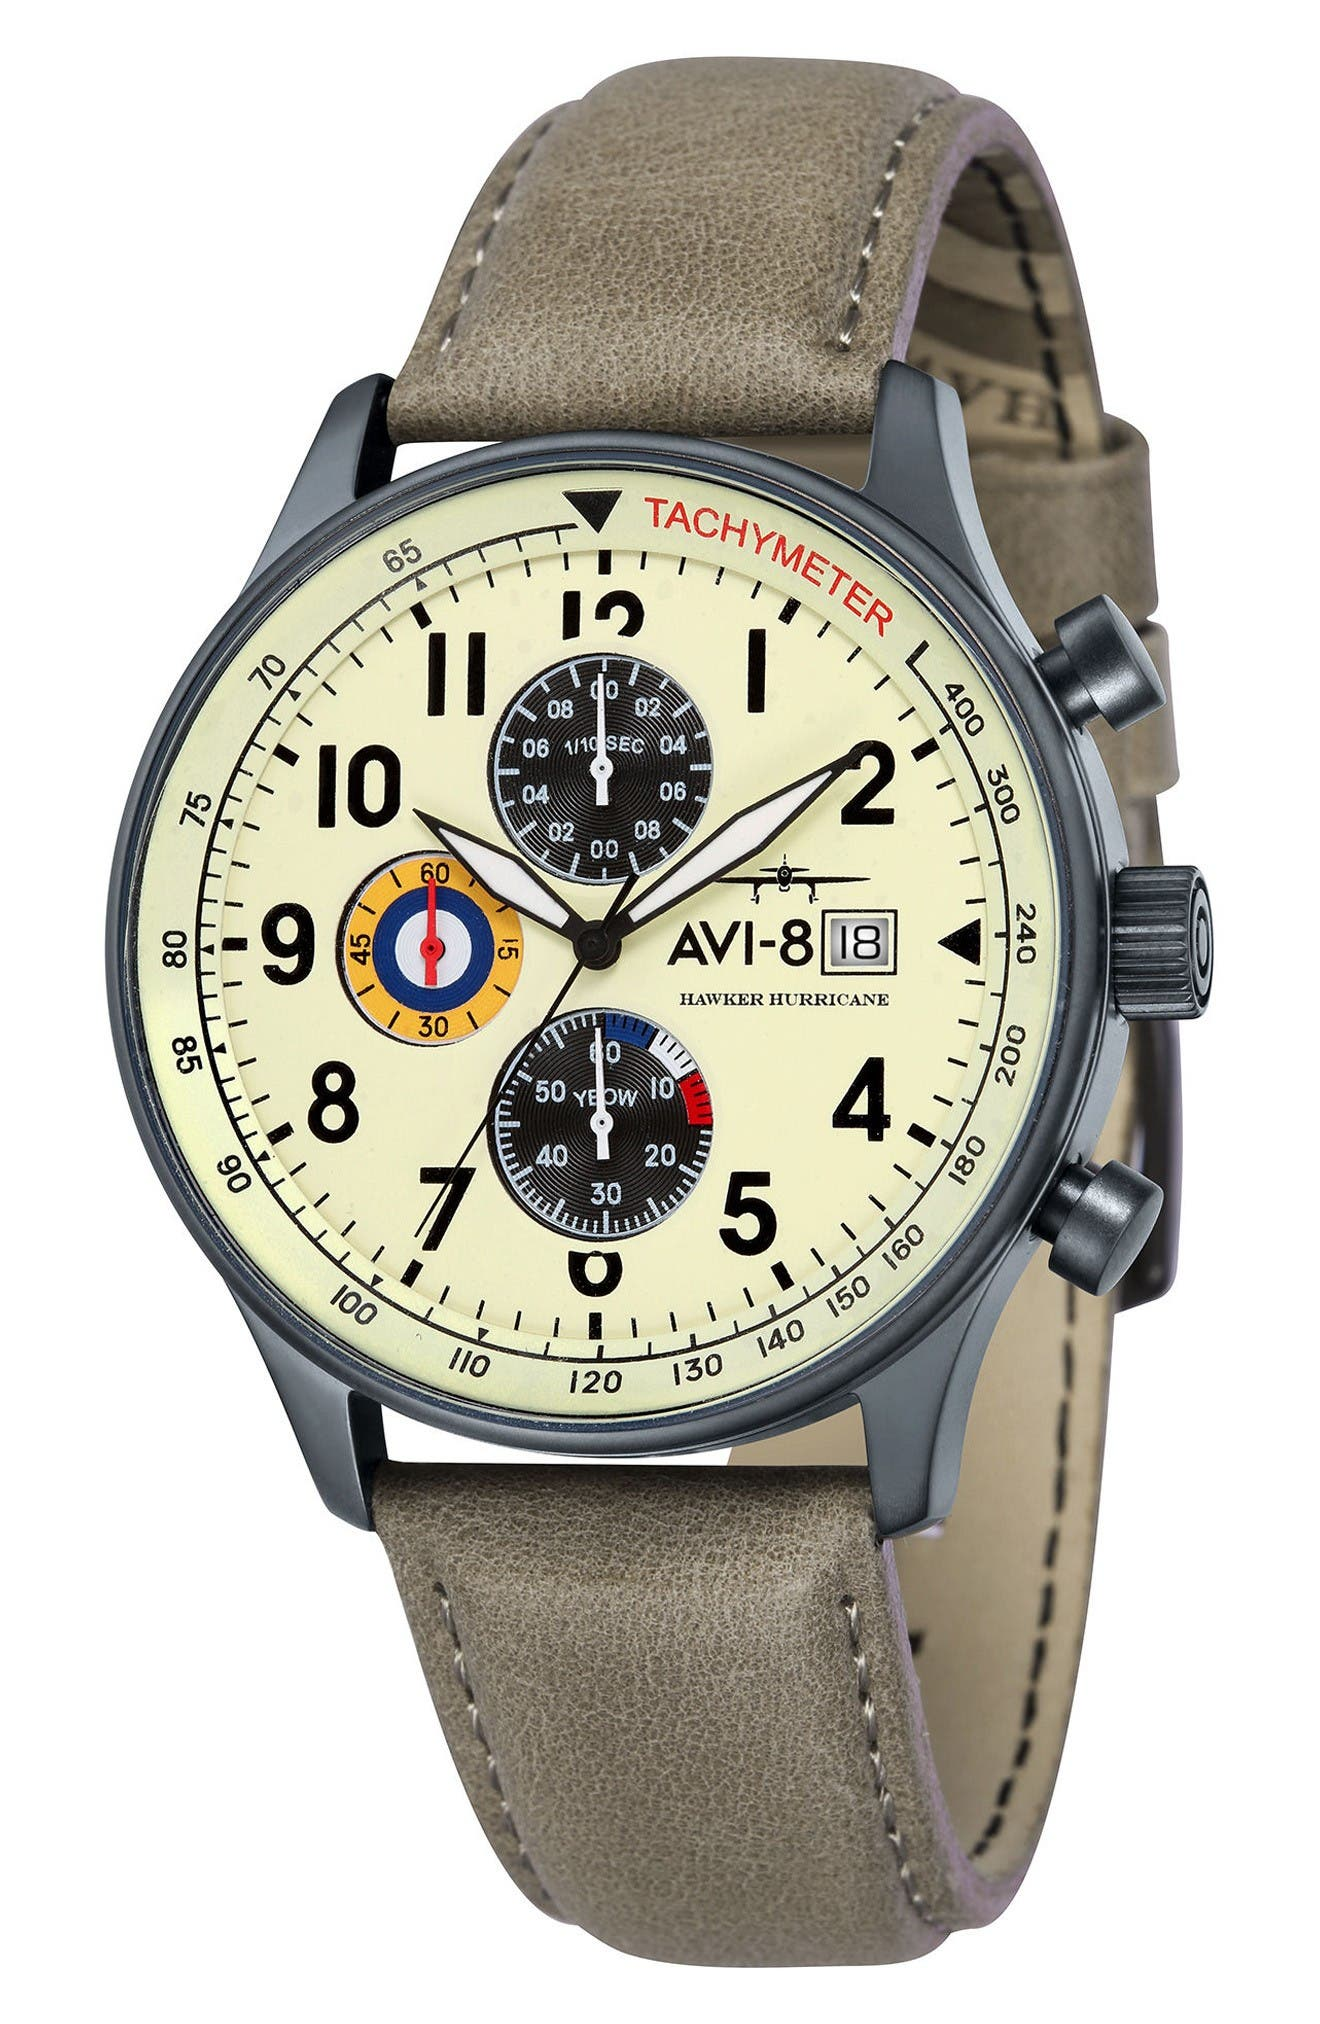 Alternate Image 1 Selected - AVI-8 Hawker Hurricane Chronograph Leather Strap Watch, 42mm